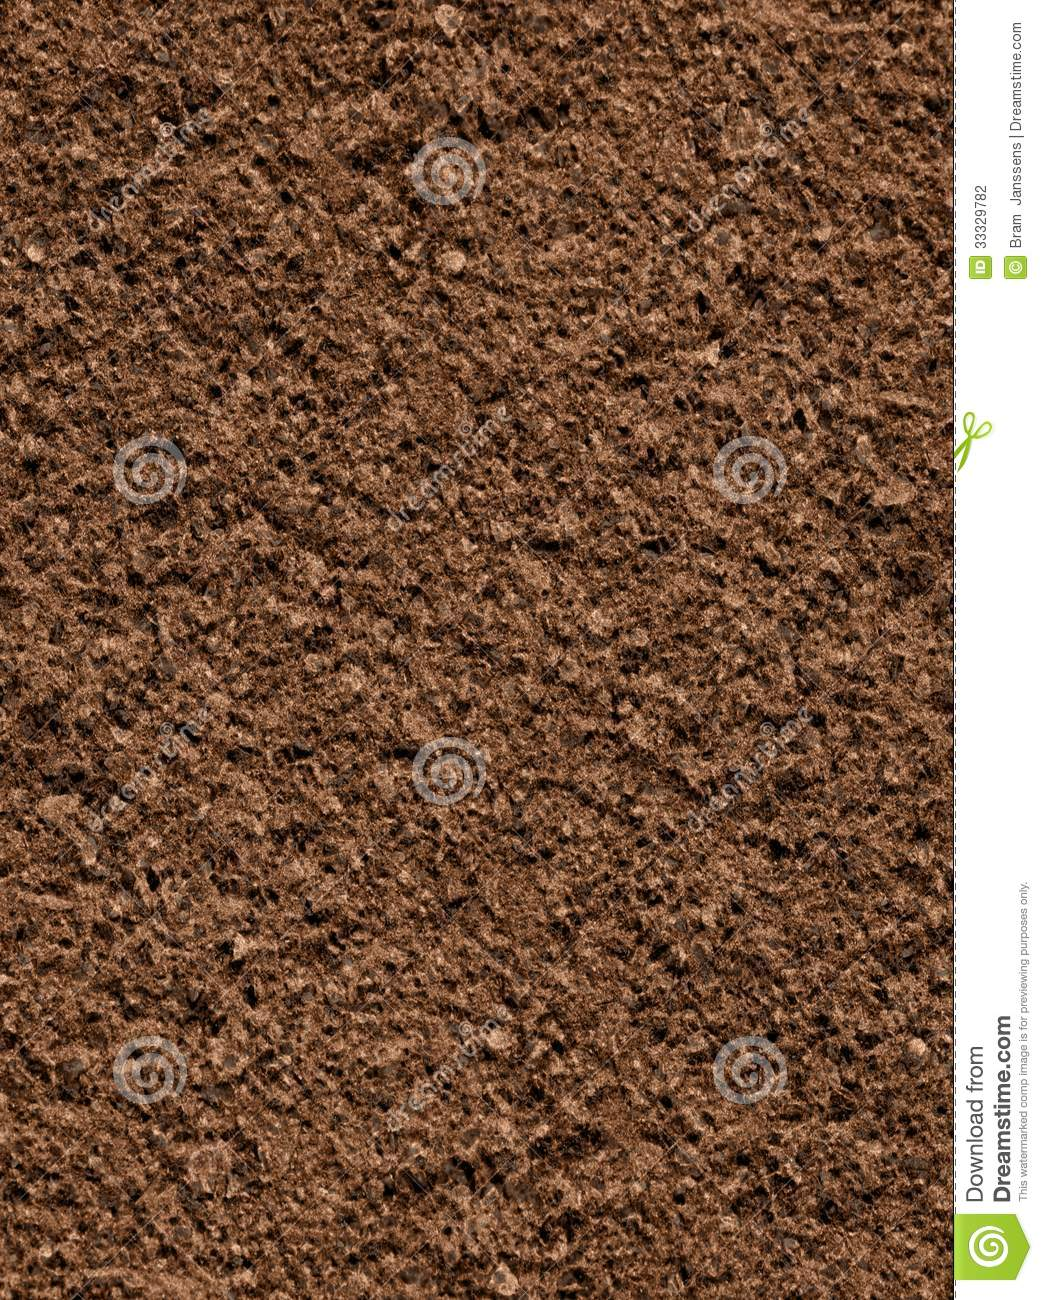 Soil dirt texture stock illustration. Illustration of dust ...